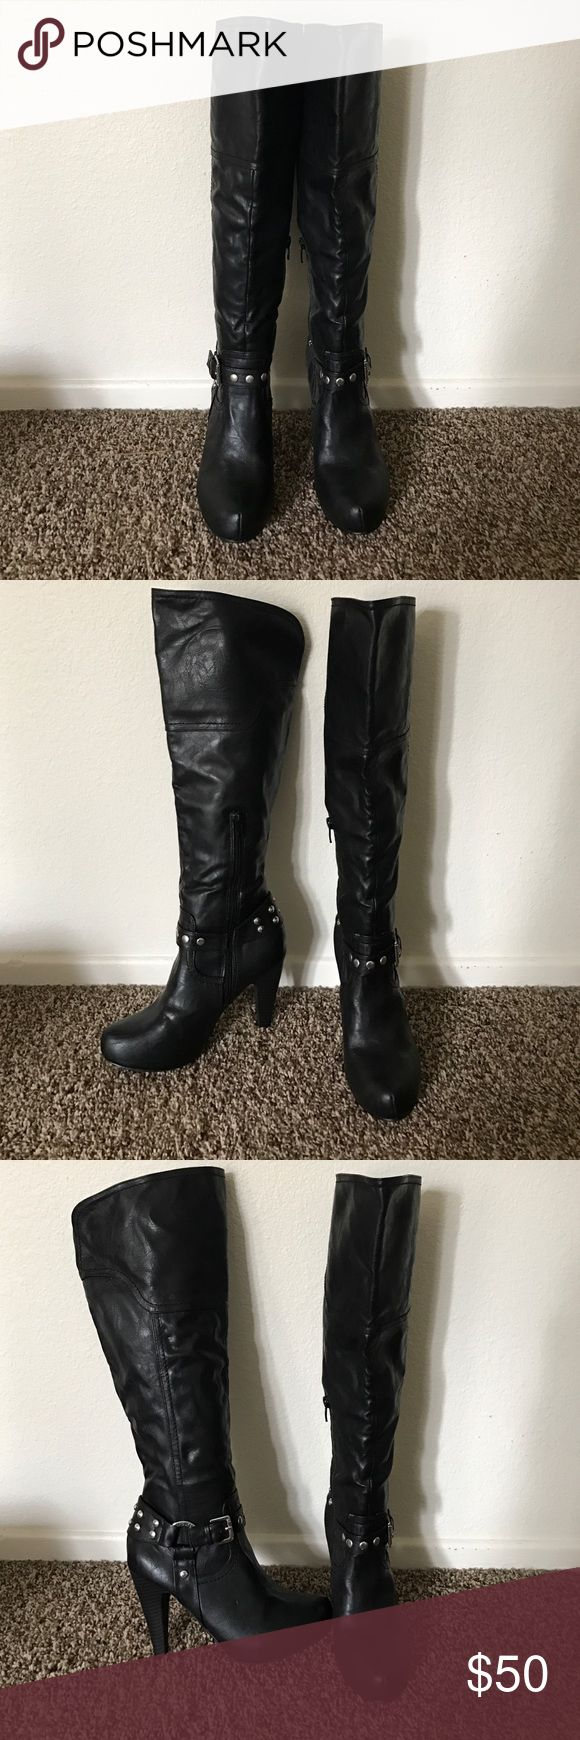 Guess black leather knee-high boots size 6 Guess black leather knee-high boots size 6 G by Guess Shoes Heeled Boots